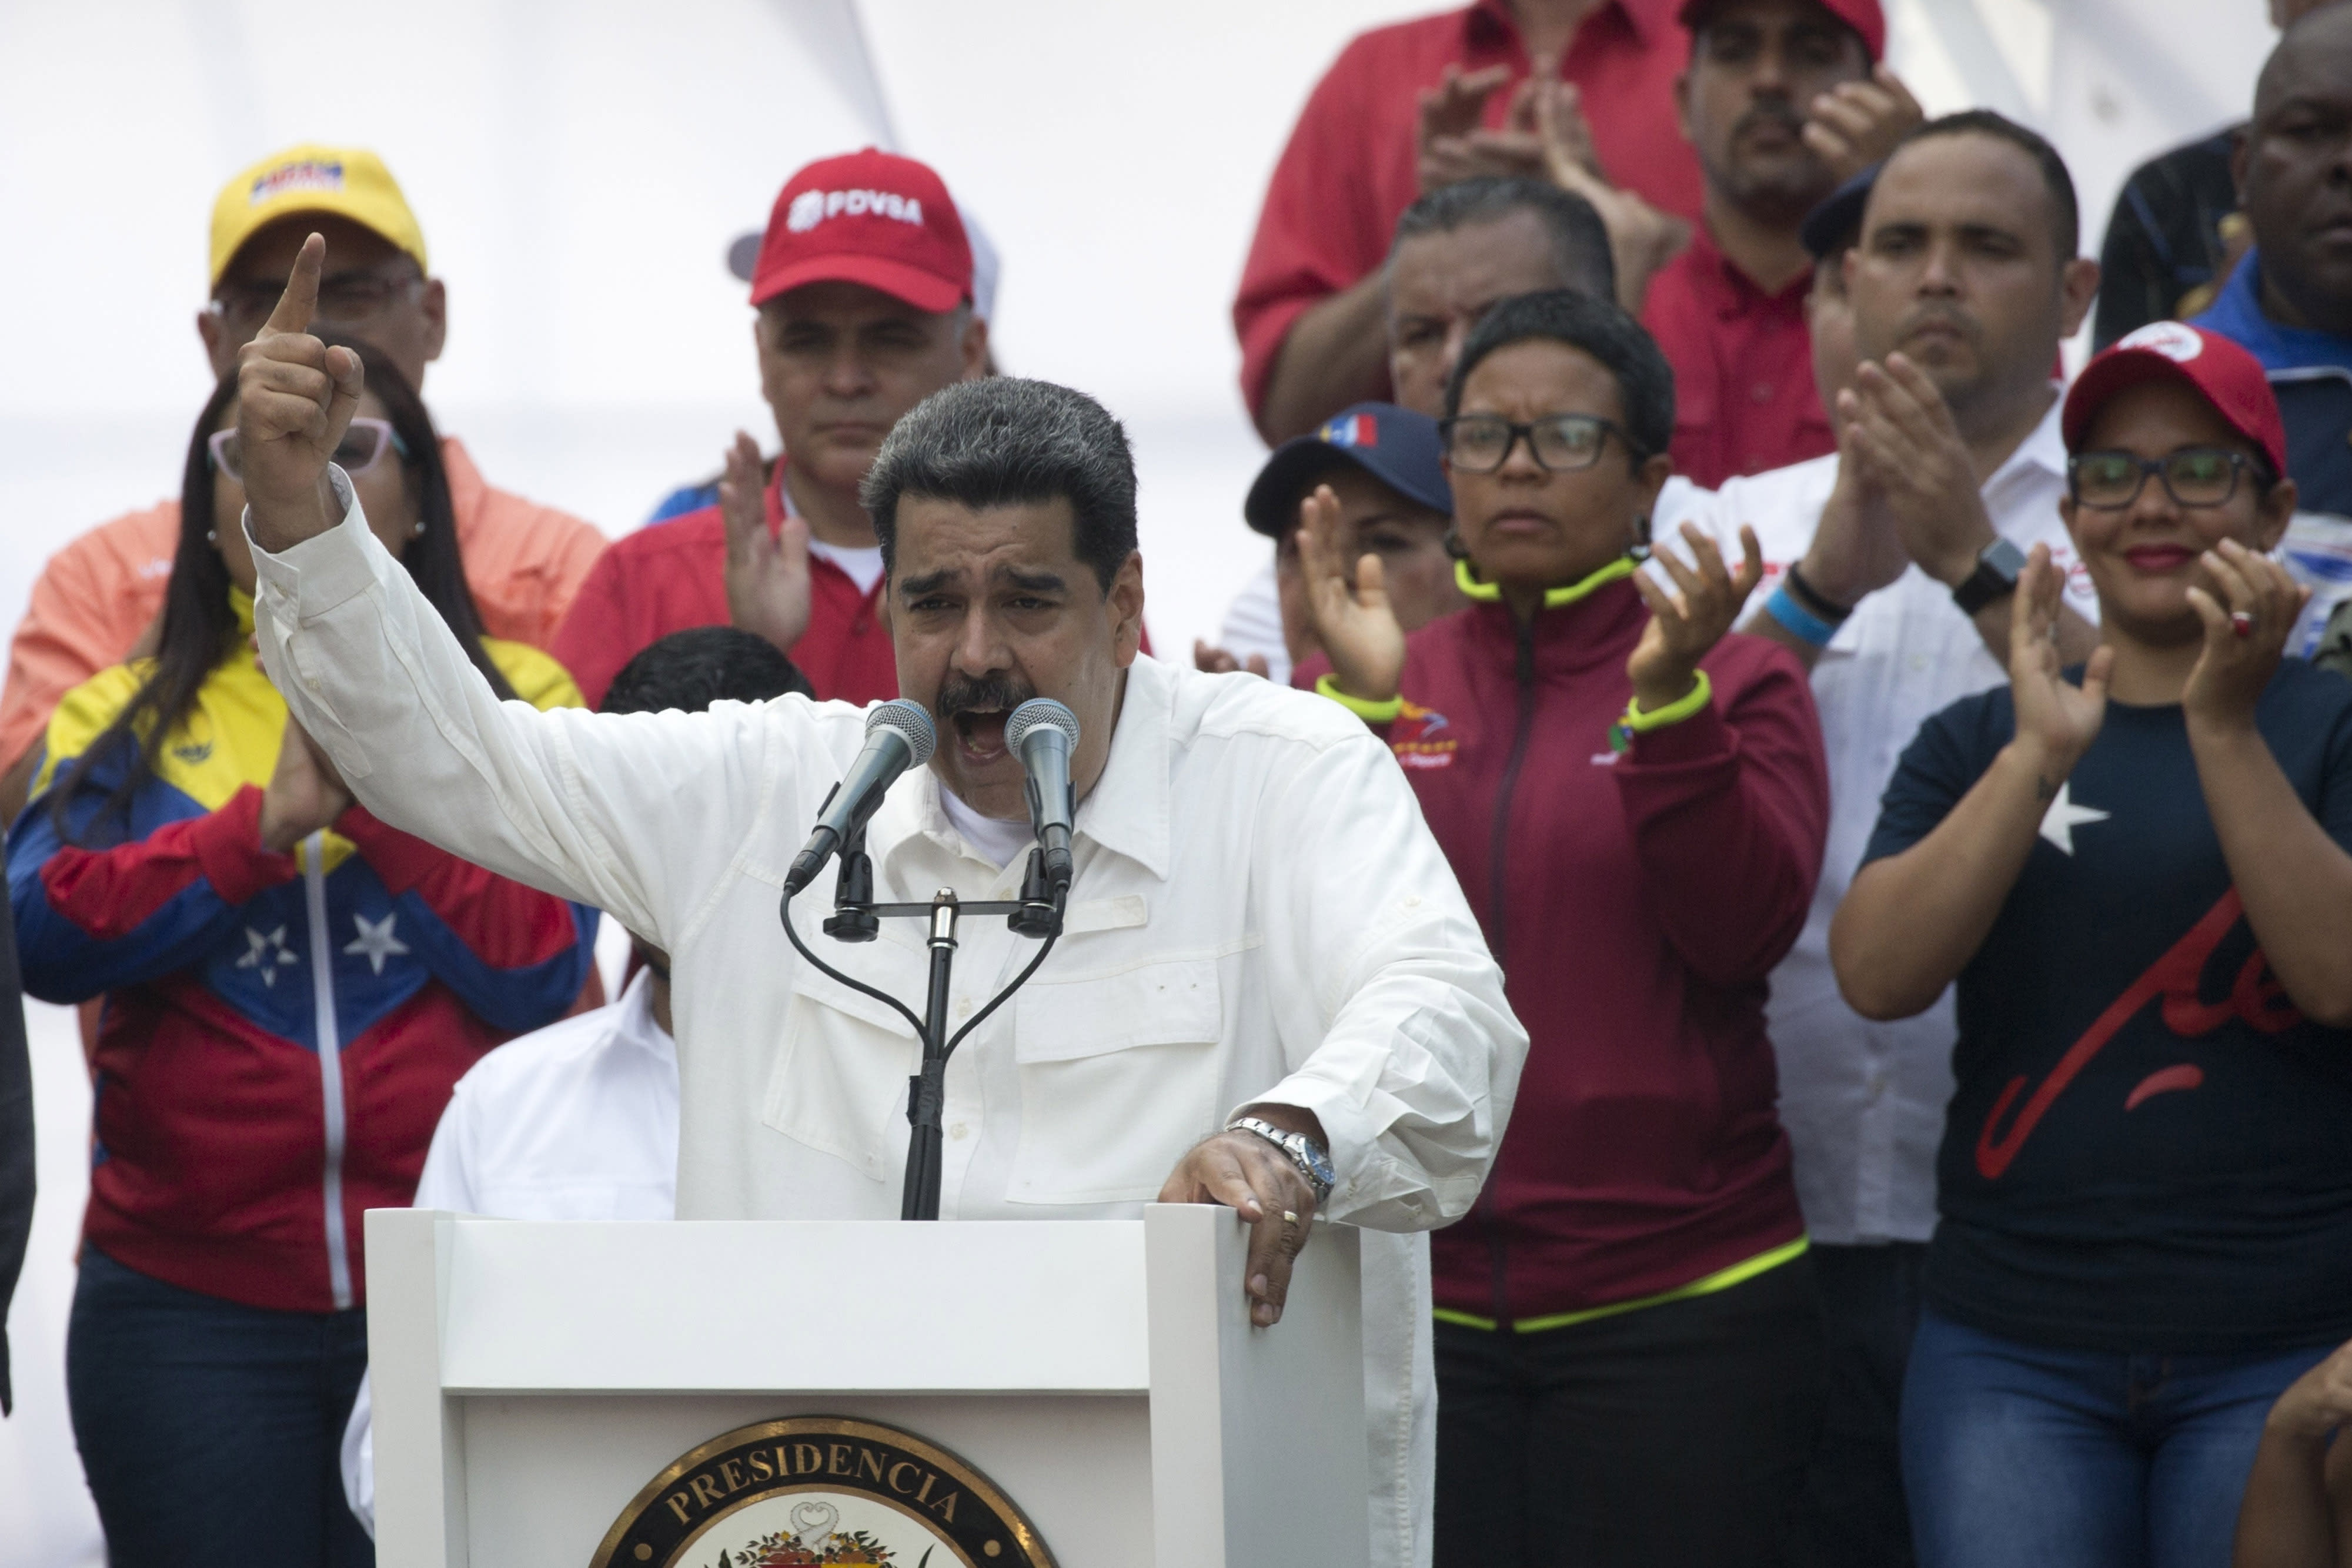 """Venezuela's President Nicolas Maduro speaks to supporters during a government rally in Caracas, Venezuela, Saturday, March 9, 2019. Demonstrators danced and waved flags on what organizers labeled a """"day of anti-imperialism"""" in a show of defiance toward the United States, which has imposed oil sanctions on Venezuela in an attempt to oust the president. (AP Photo/Ariana Cubillos)"""